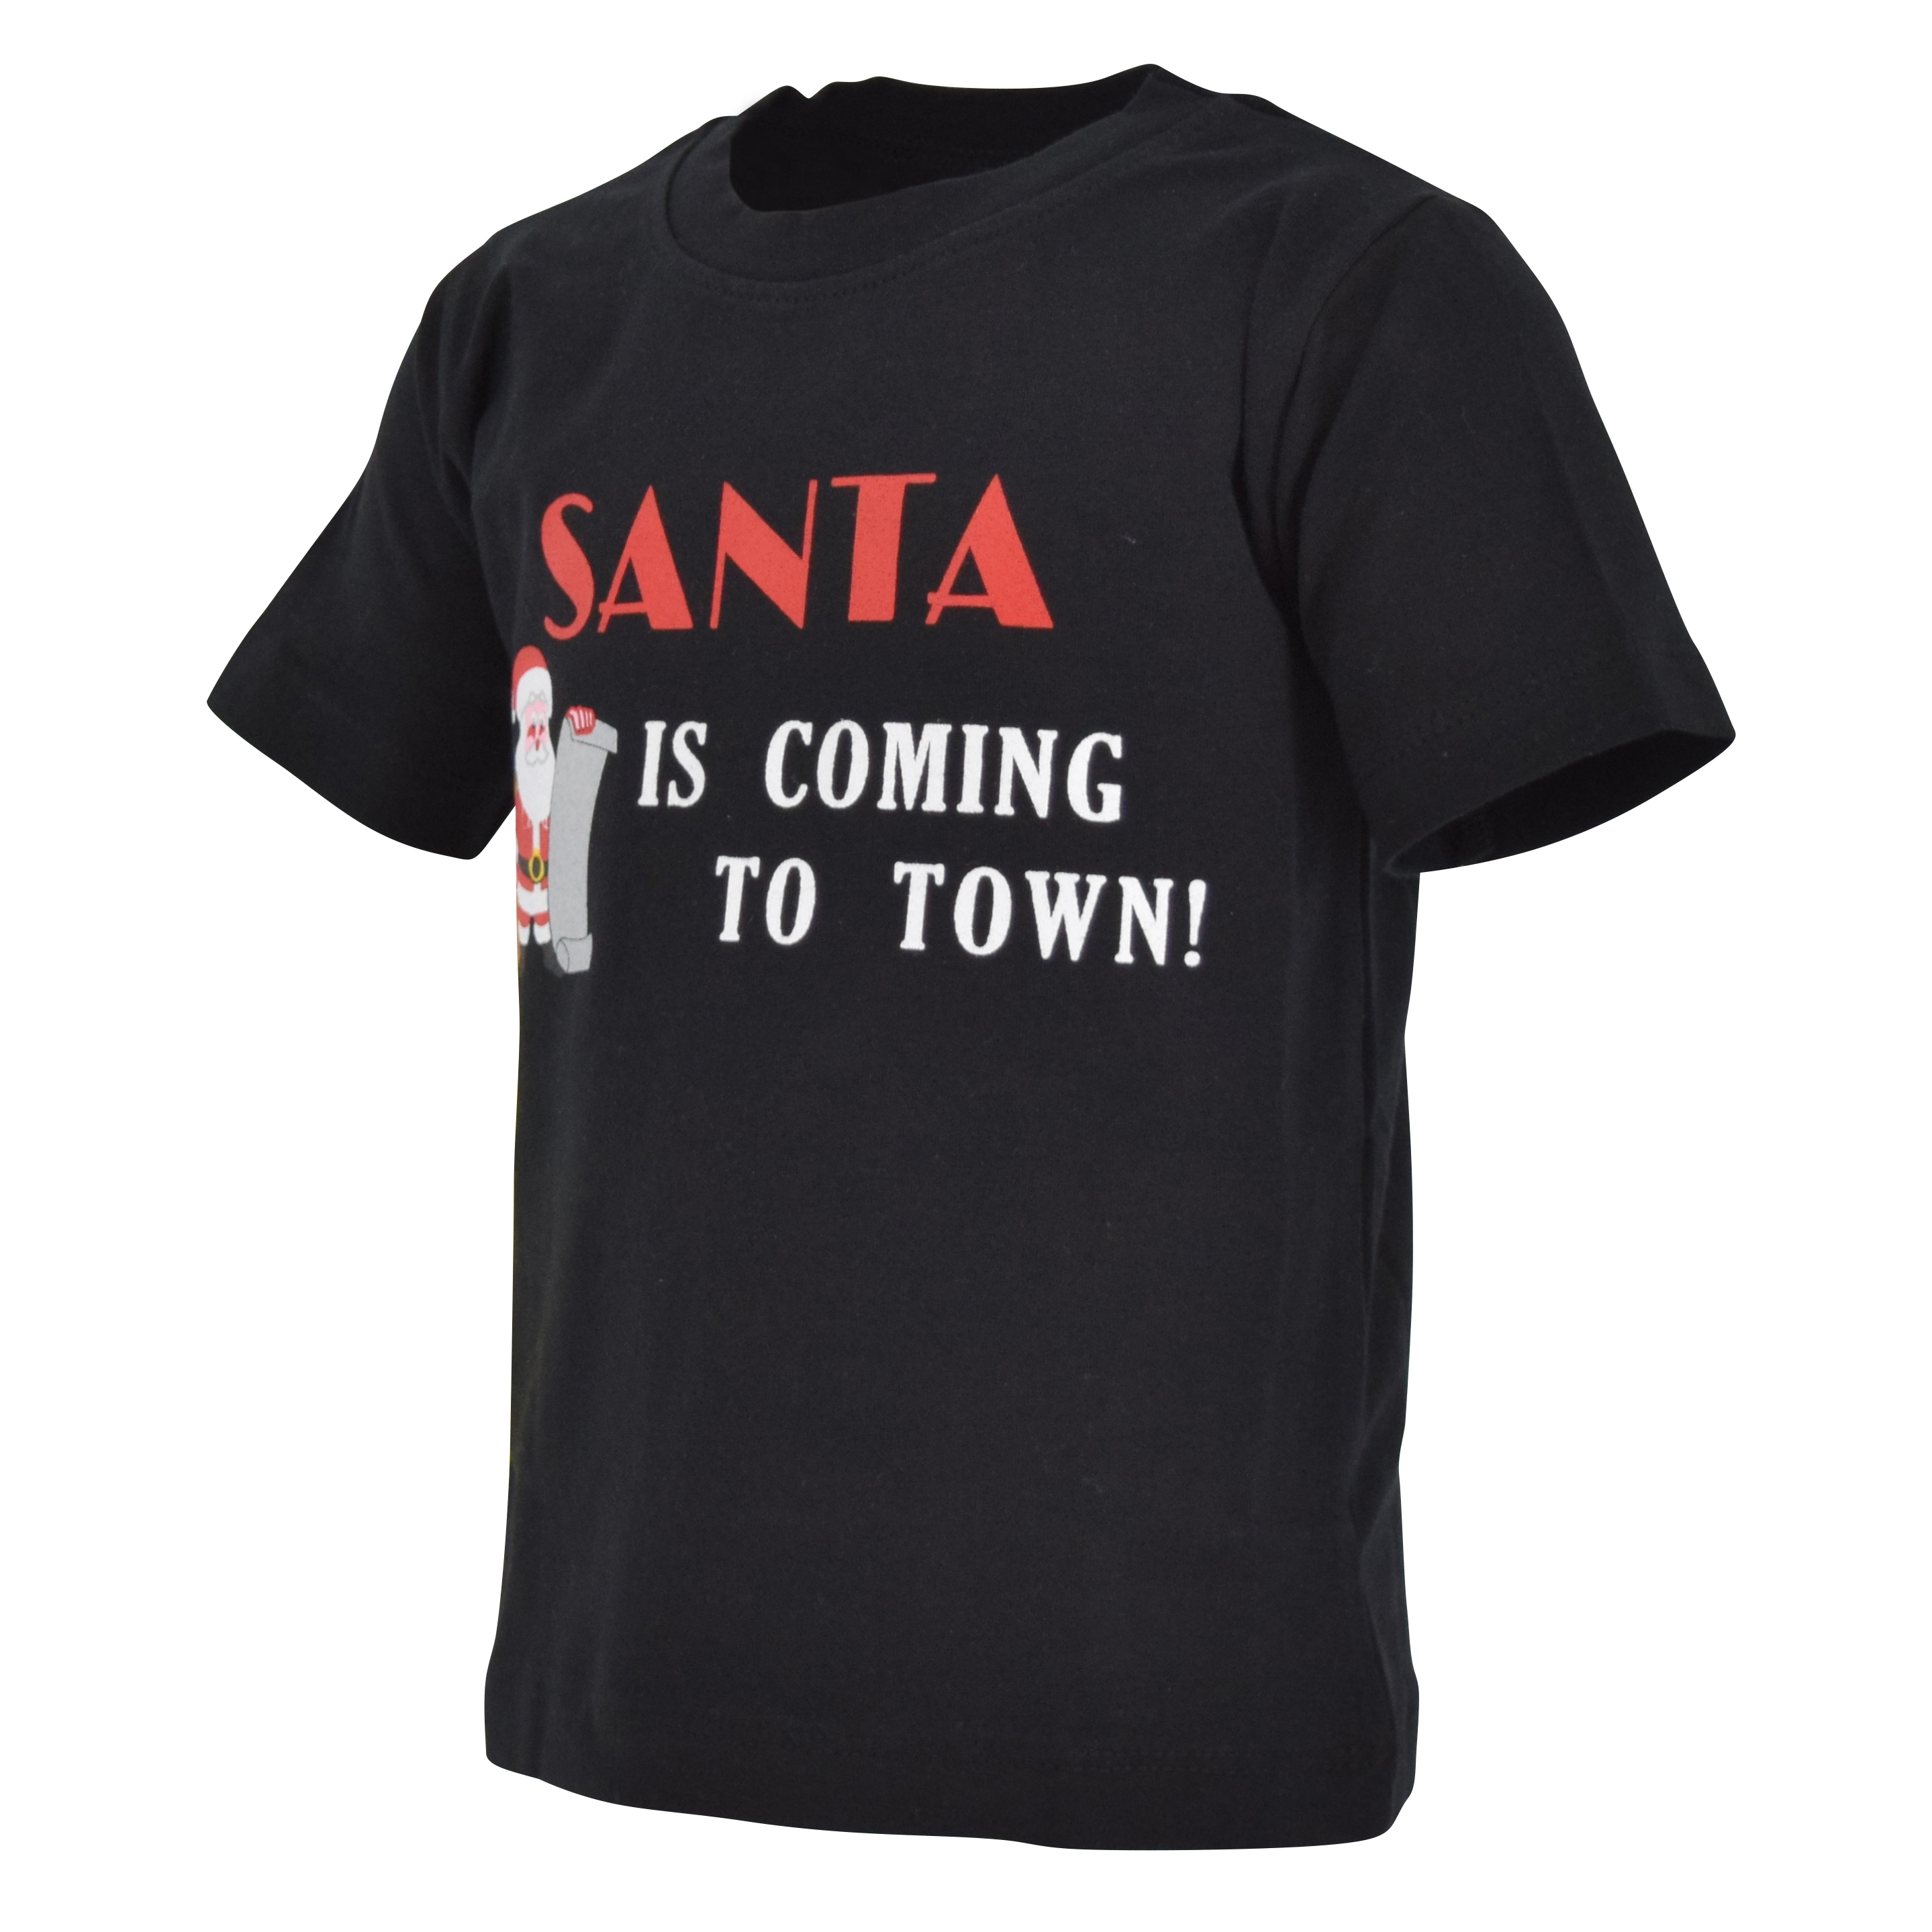 Boys Santa is Coming to Town Christmas Shirt Boutique Toddler Kids Clothes